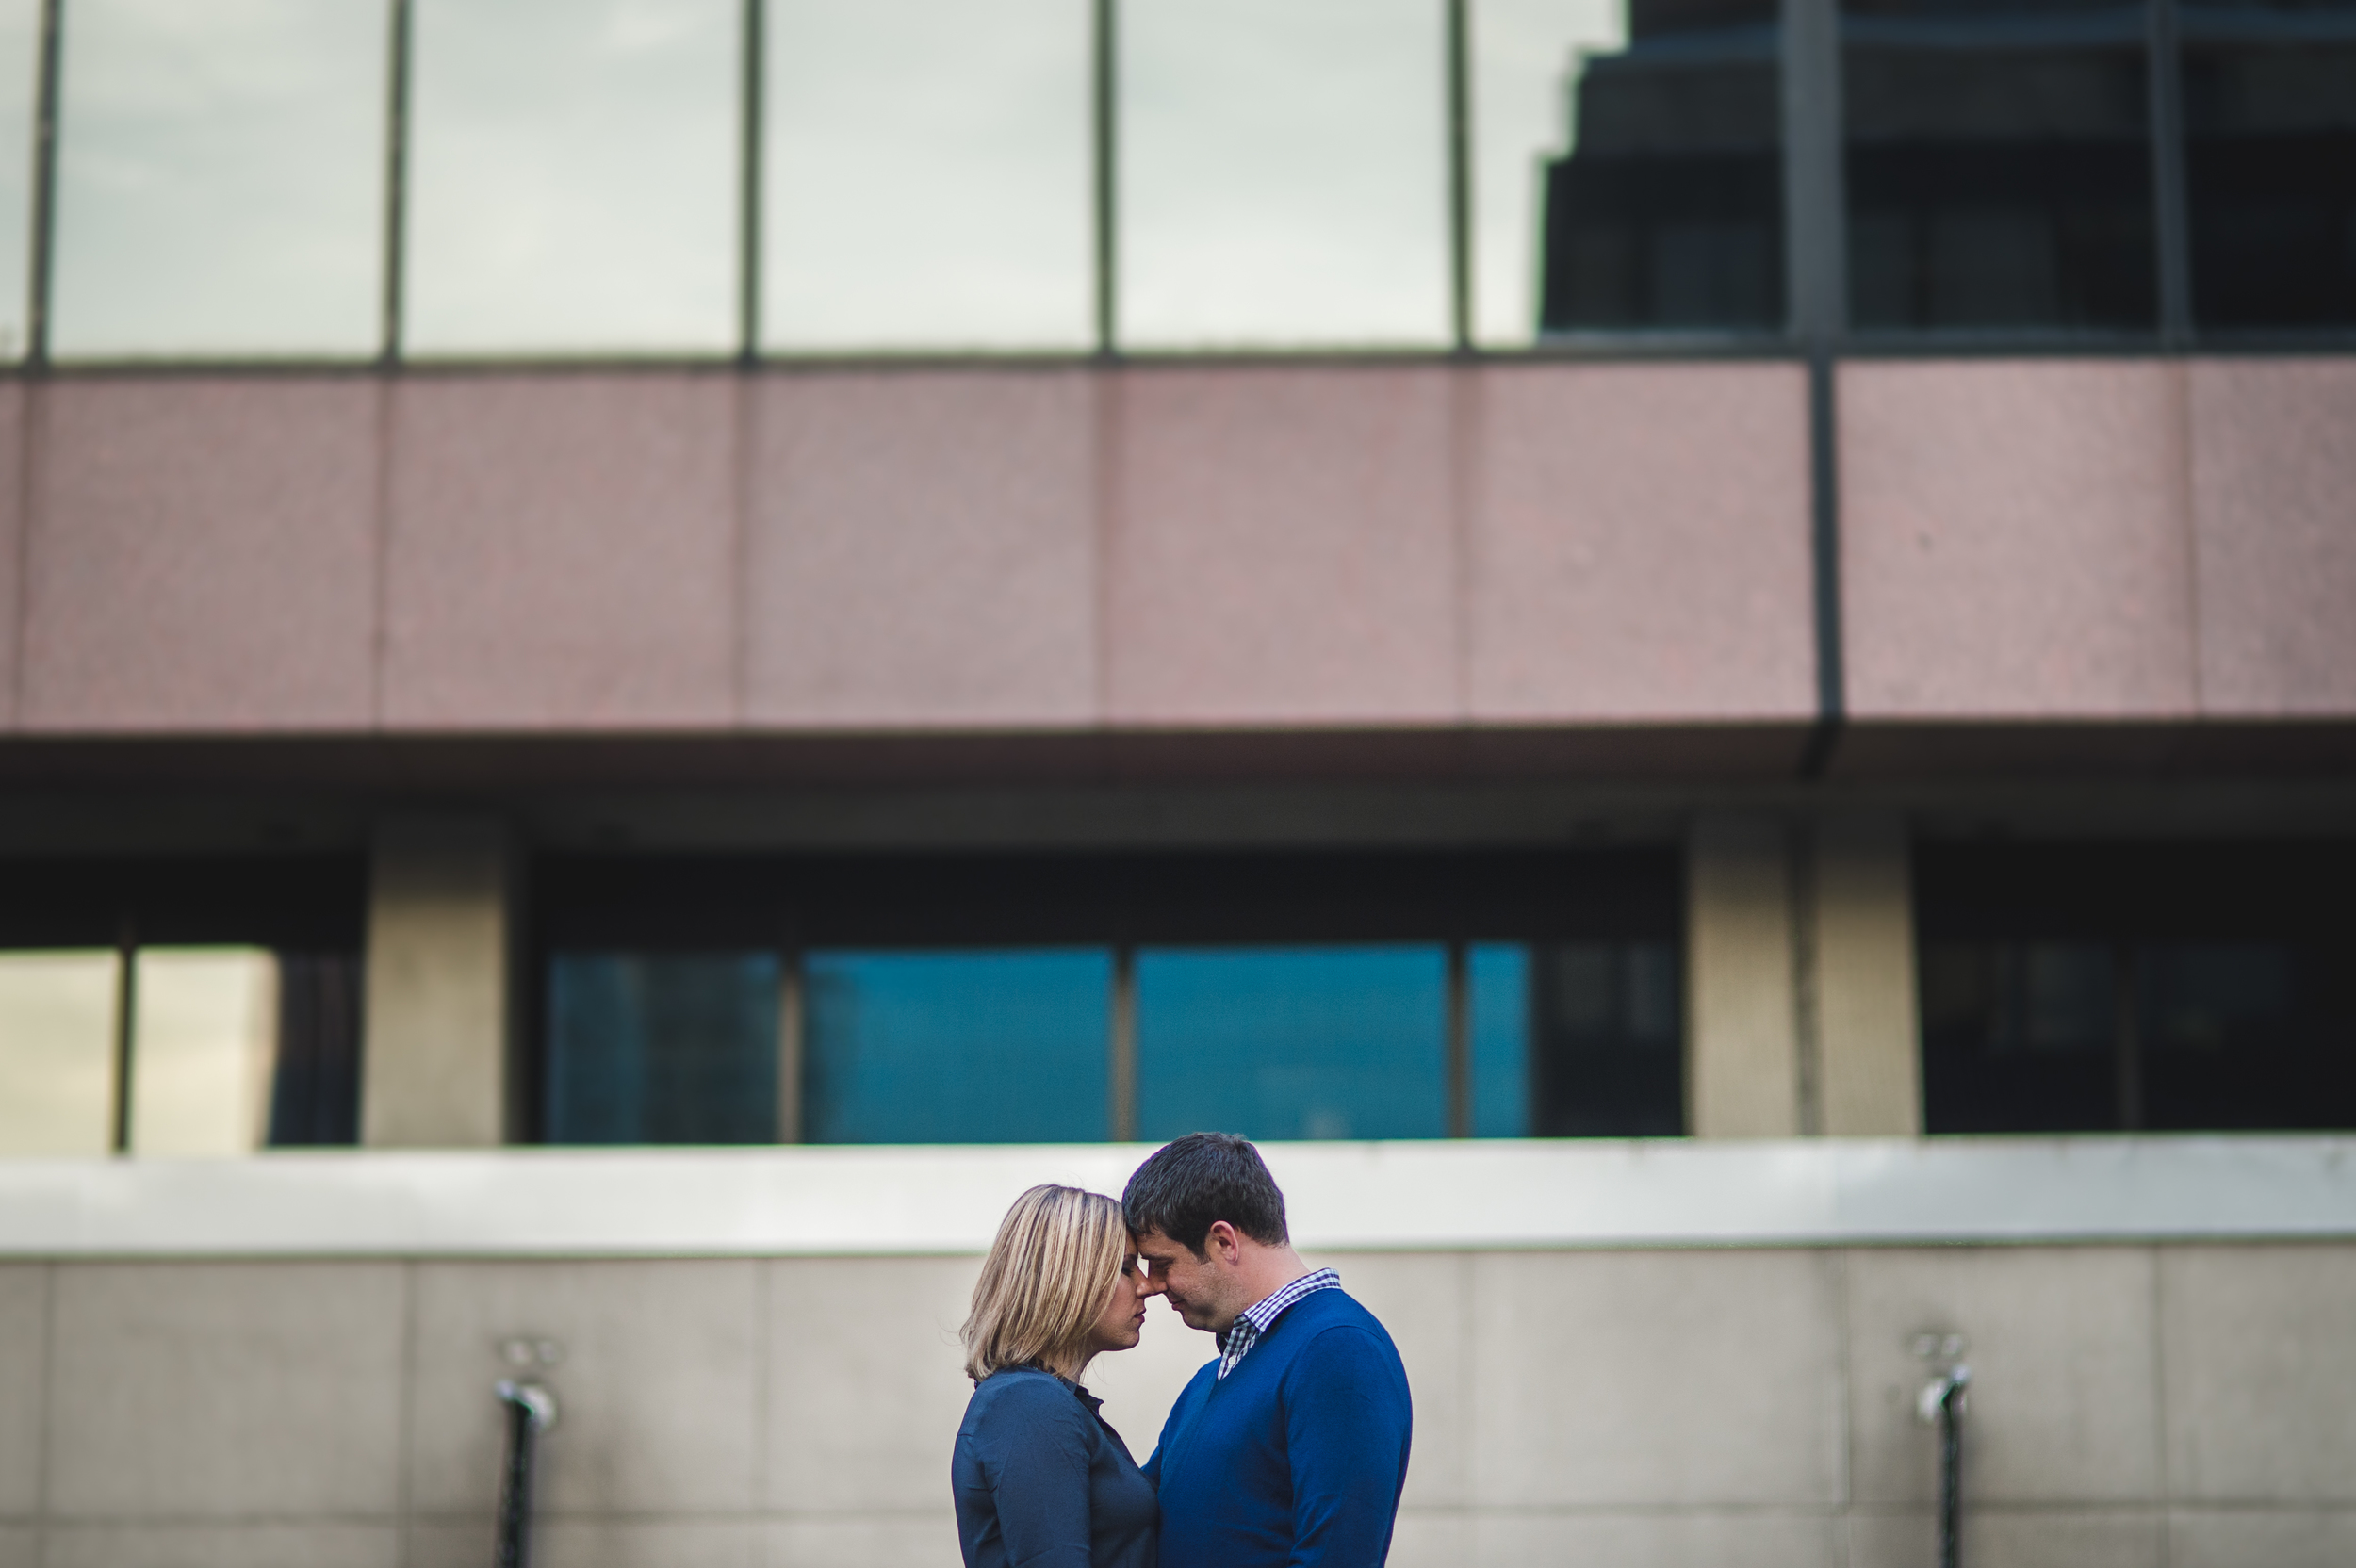 Engagement session Freedom Park Arlington VA by Mantas Kubilinskas-6.jpg